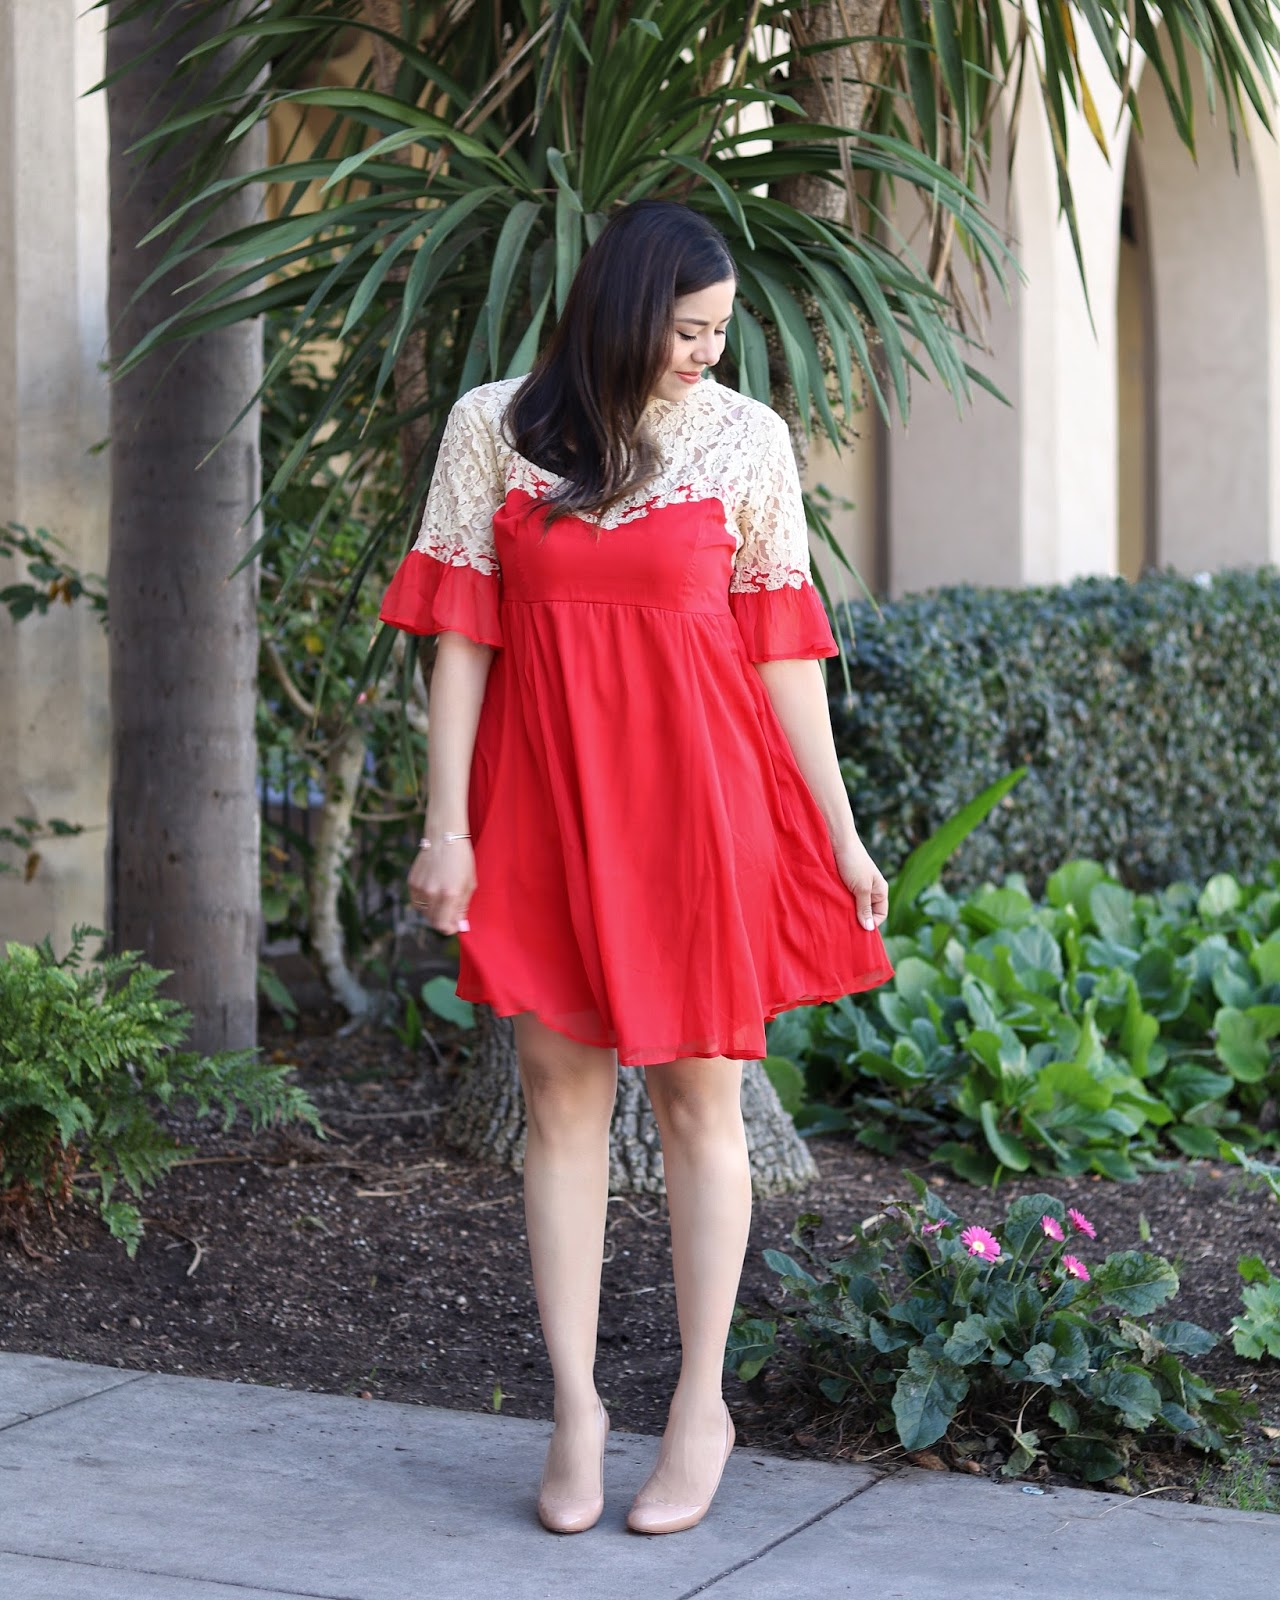 Red Dress for Valentine's, ASOS red dress with lace, san diego fashion blogger